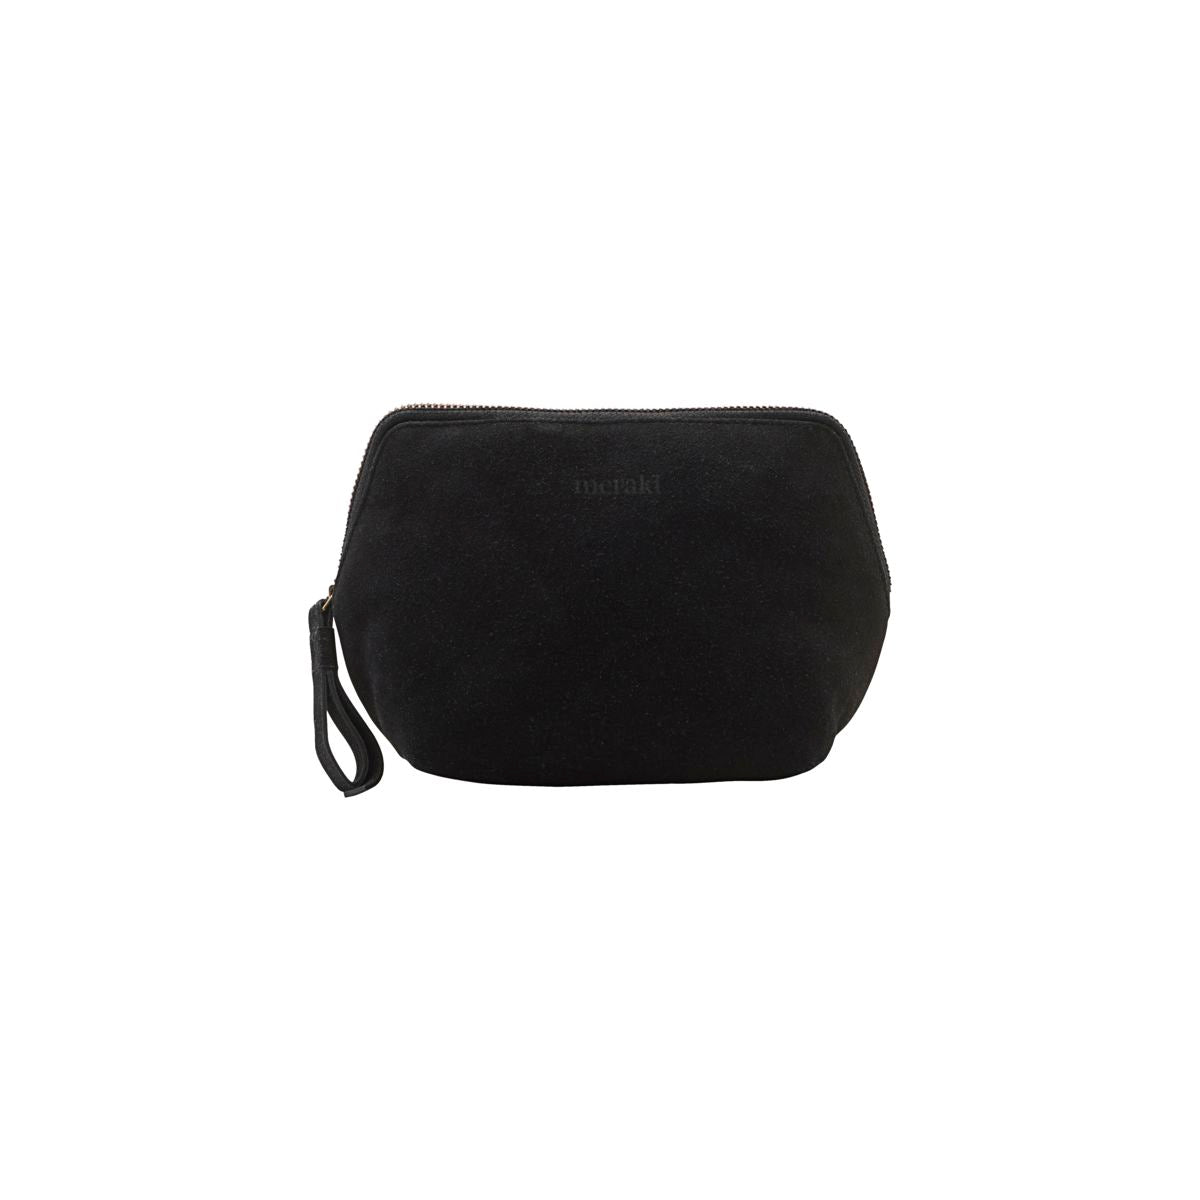 Make-up tas, Zwart